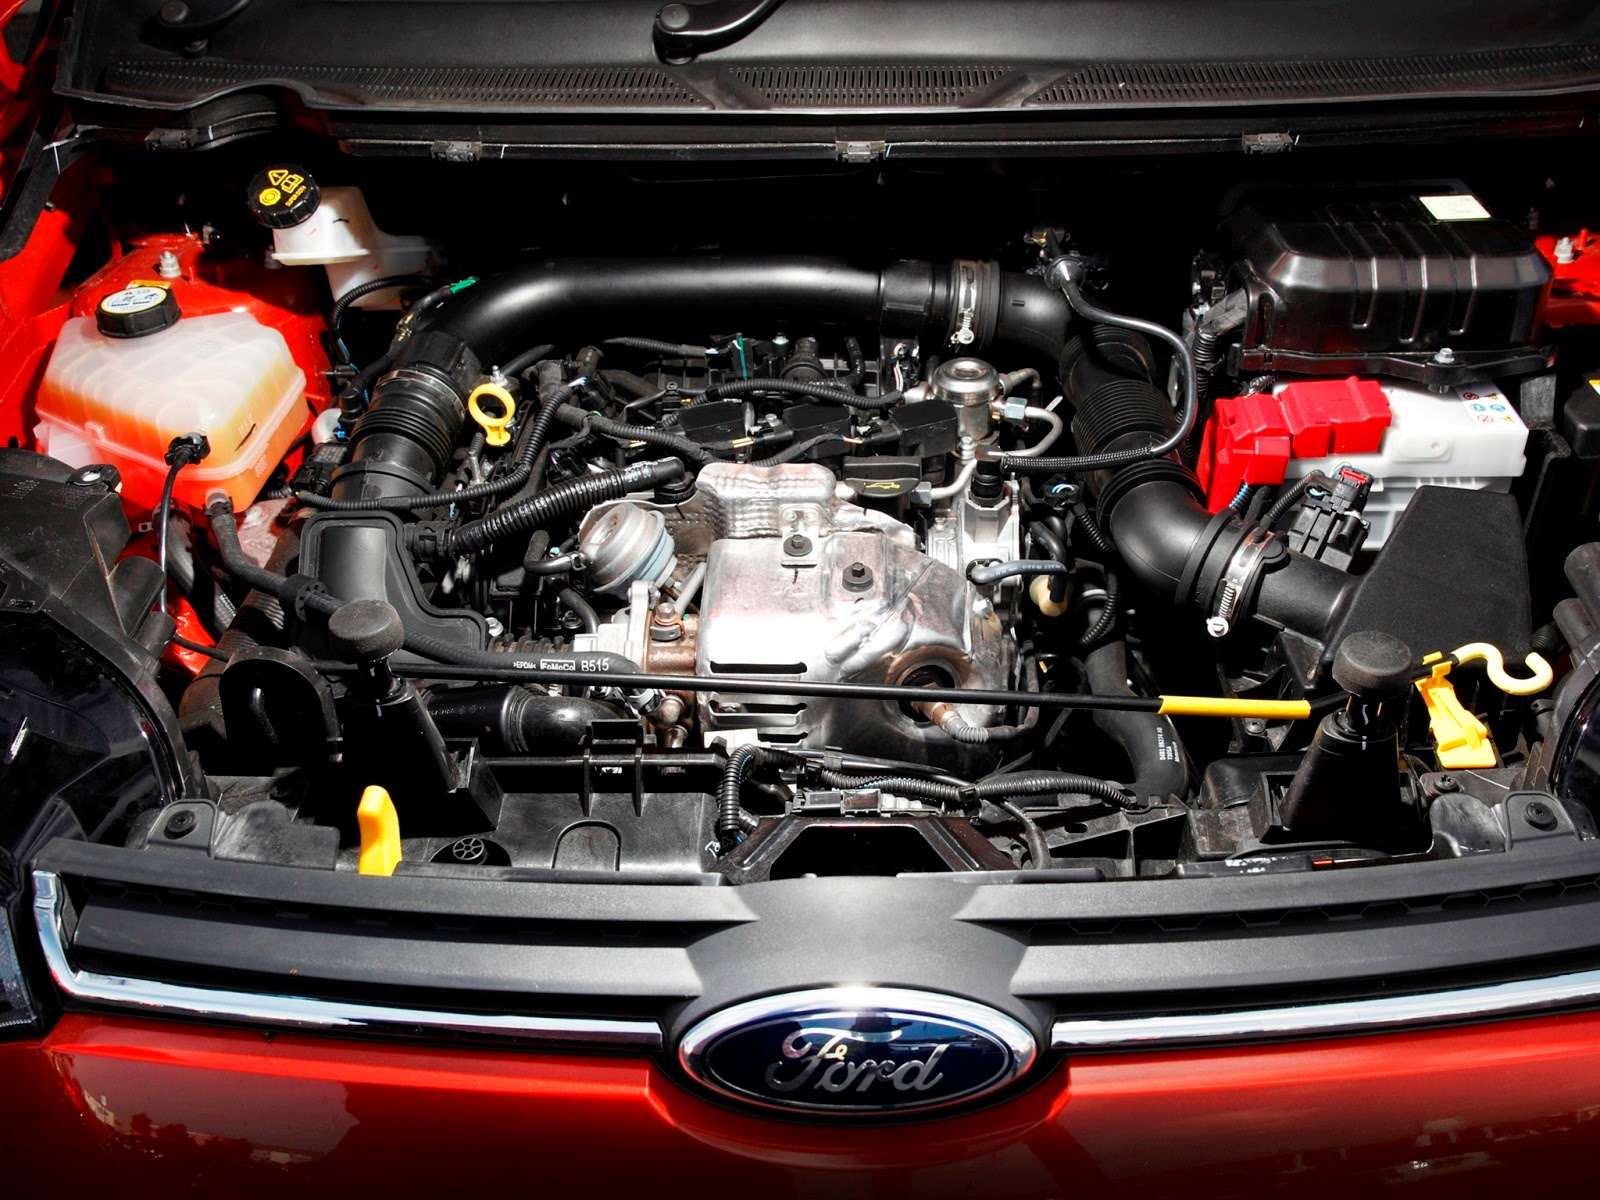 Most compact engine in its class